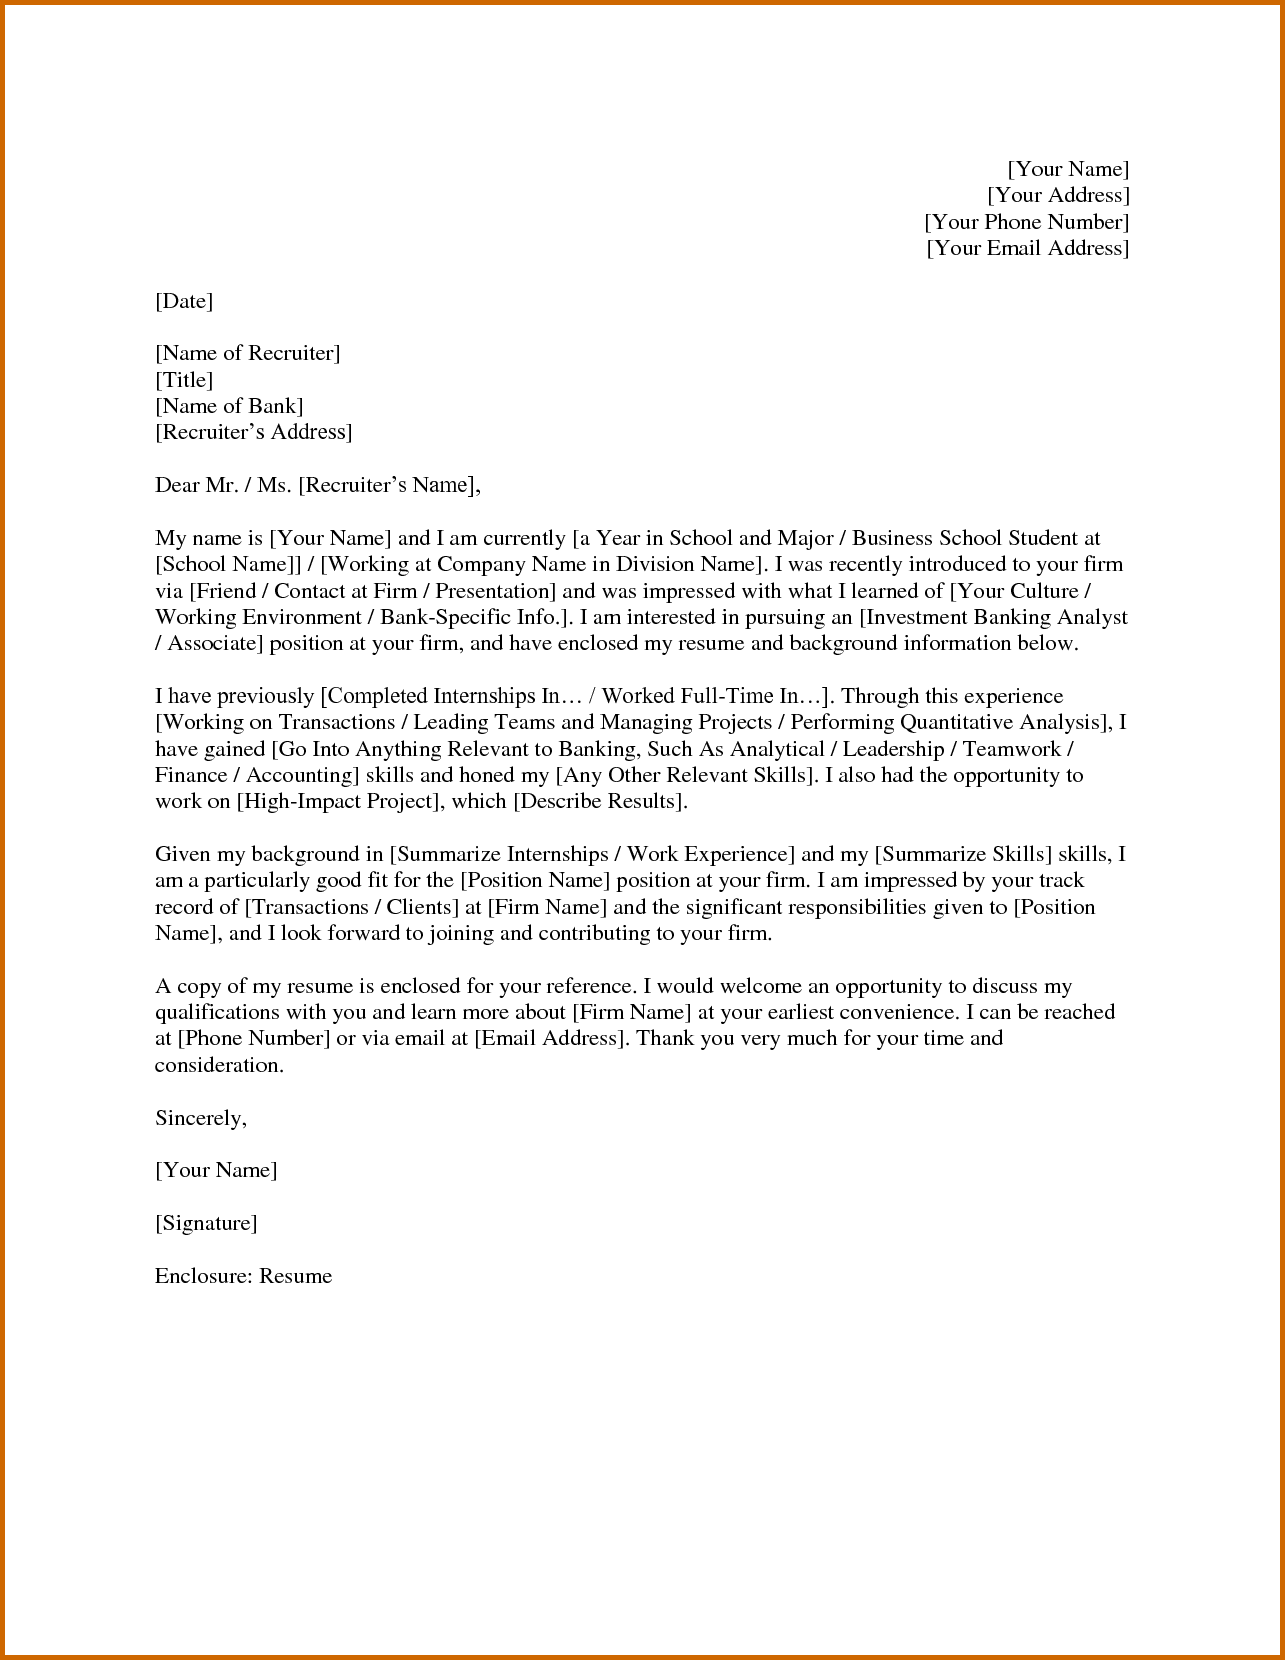 Cover Letter Template Investment Banking - Resume Examples